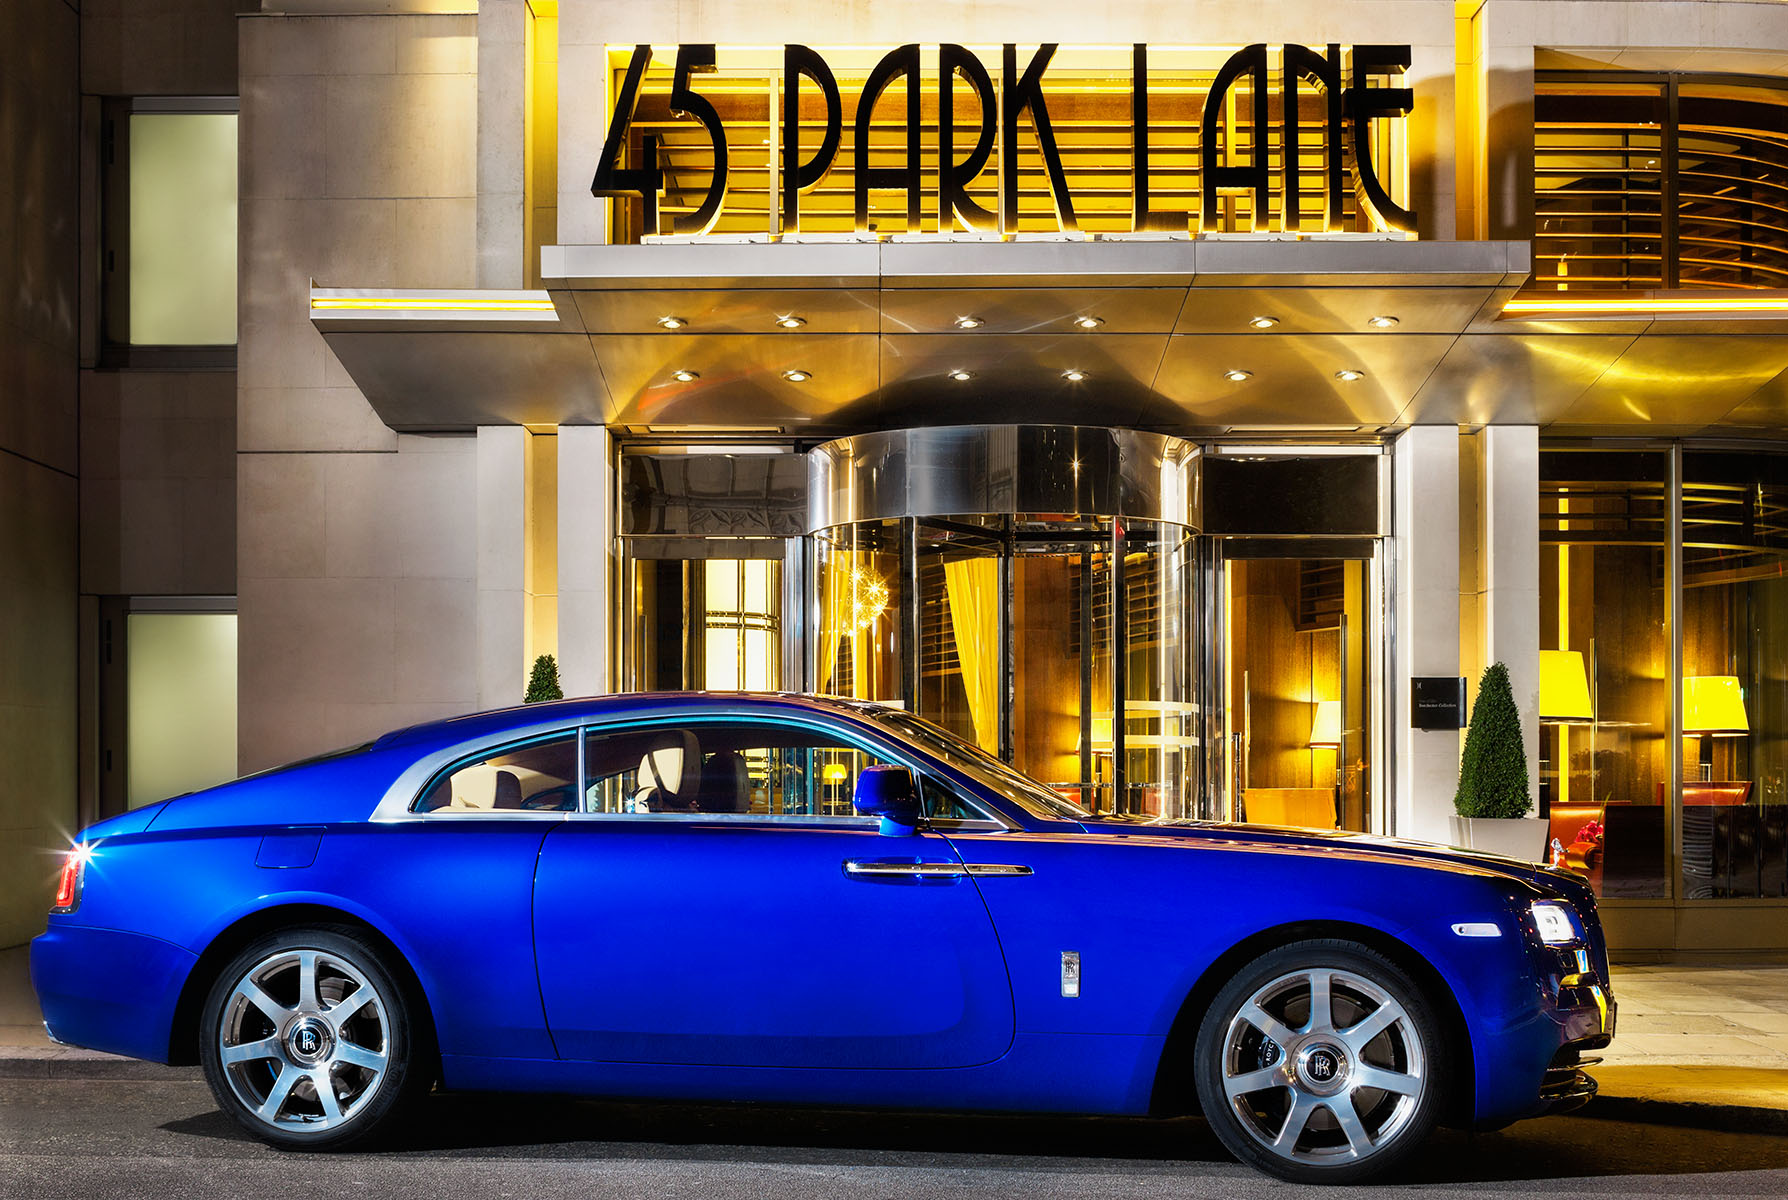 Rolls Royce Wraith promotion with Penthouse Suite at Iconic London luxury hotelClients: Dorchester Group / Rolls Royce